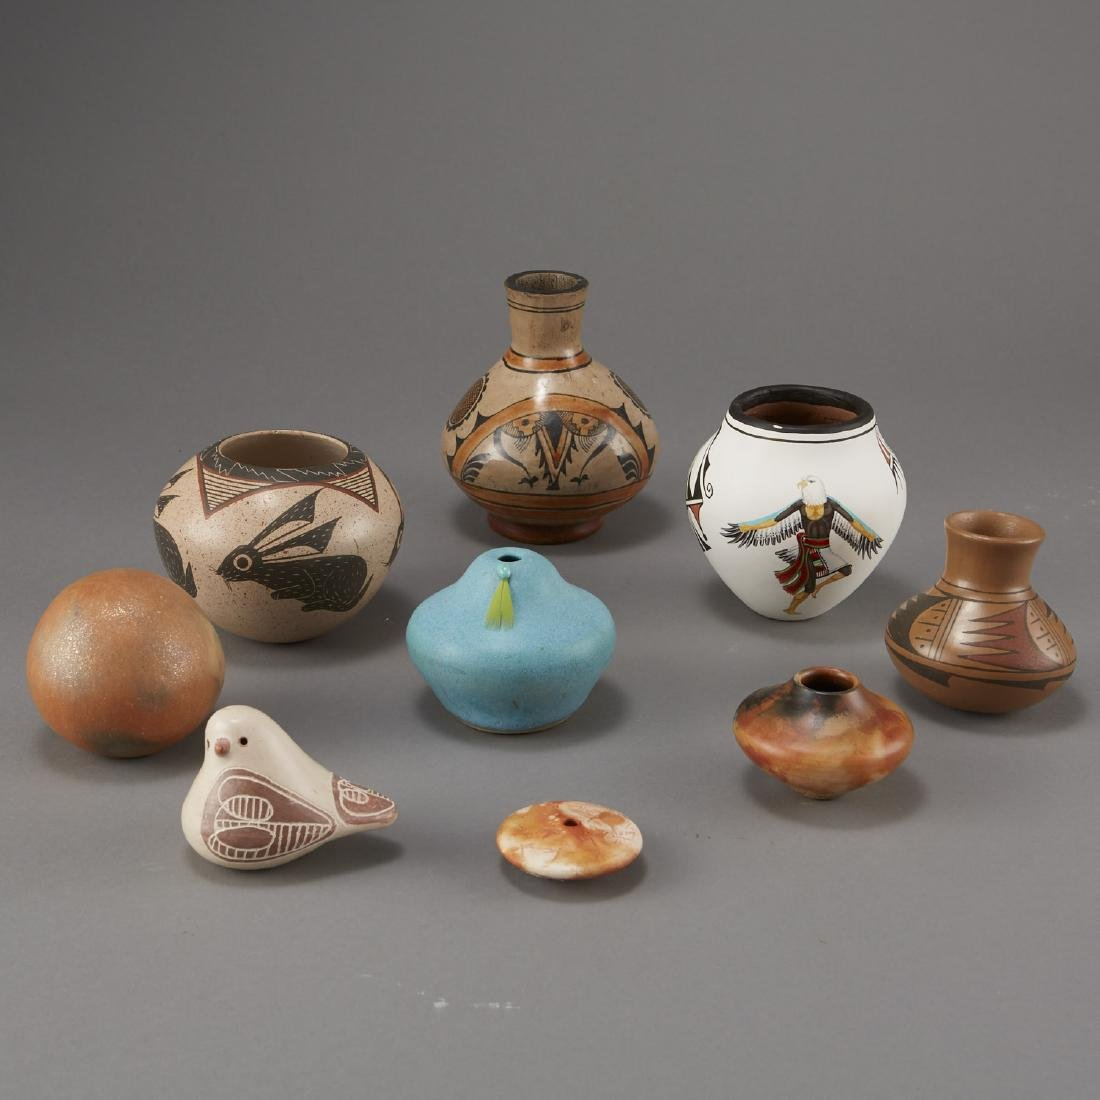 9 Pottery Pieces Pahponee, Lujan-Hauer, Mateos